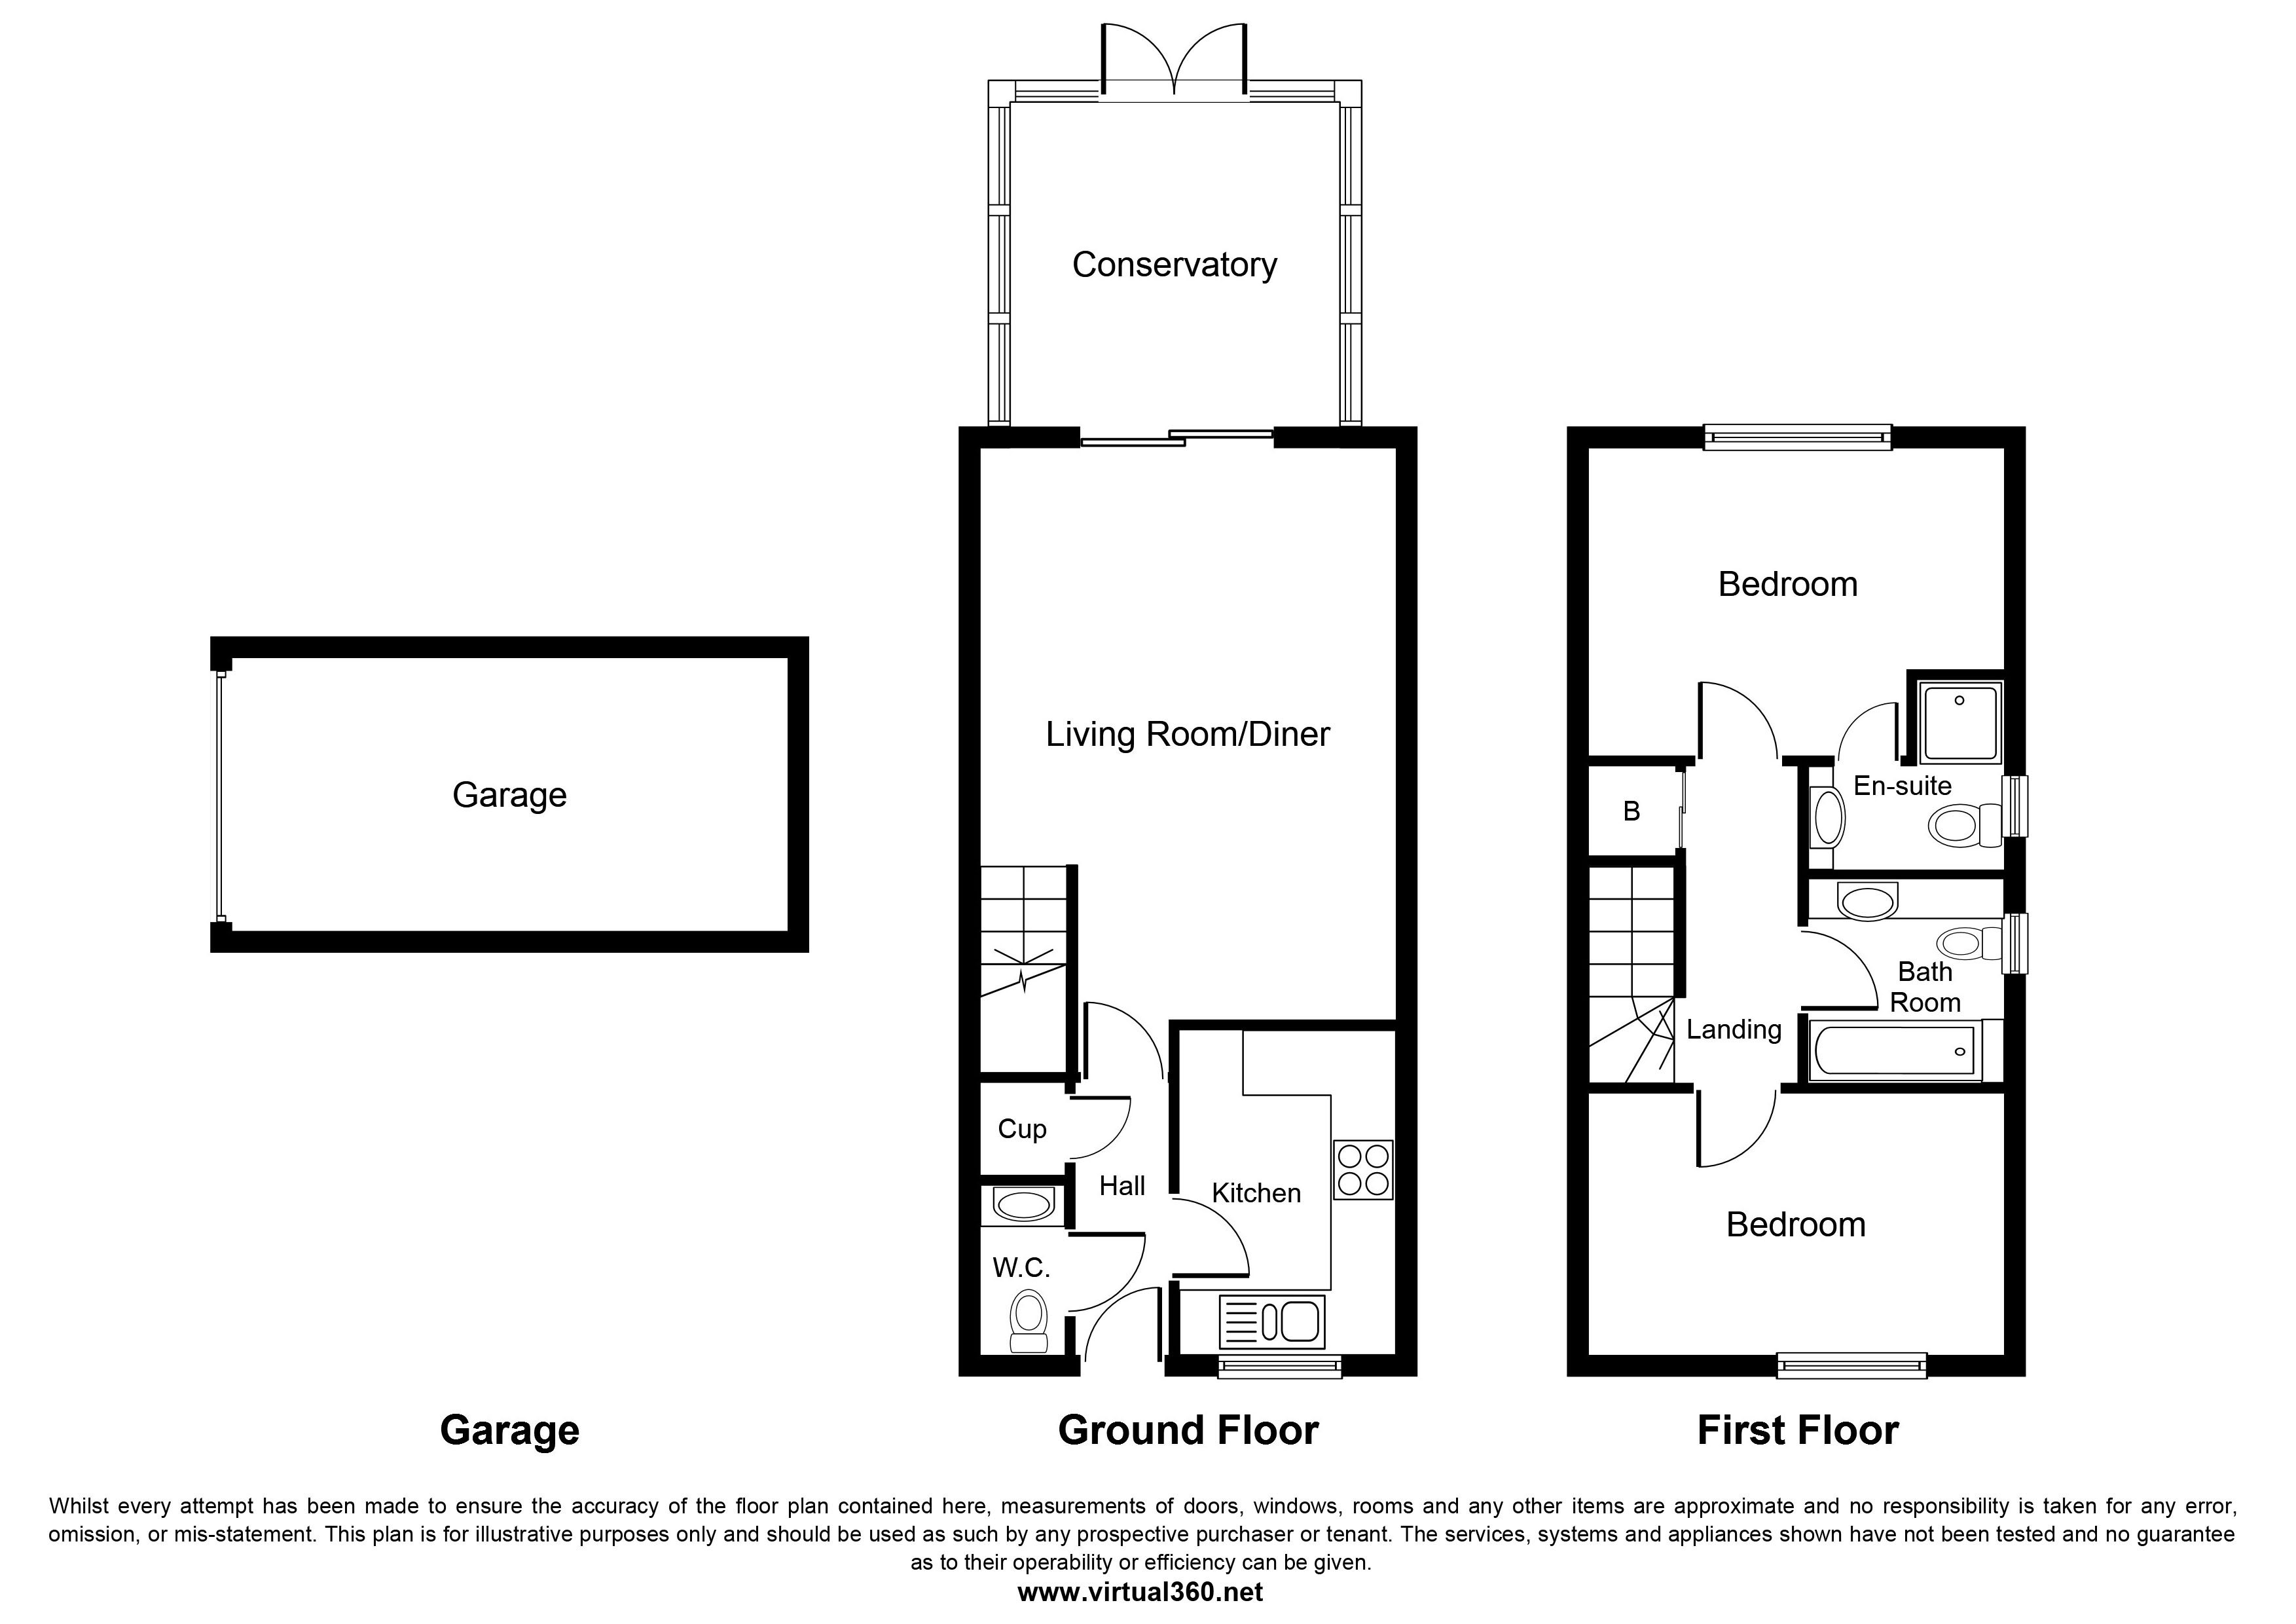 Warfield, Bracknell, Berkshire floor plan